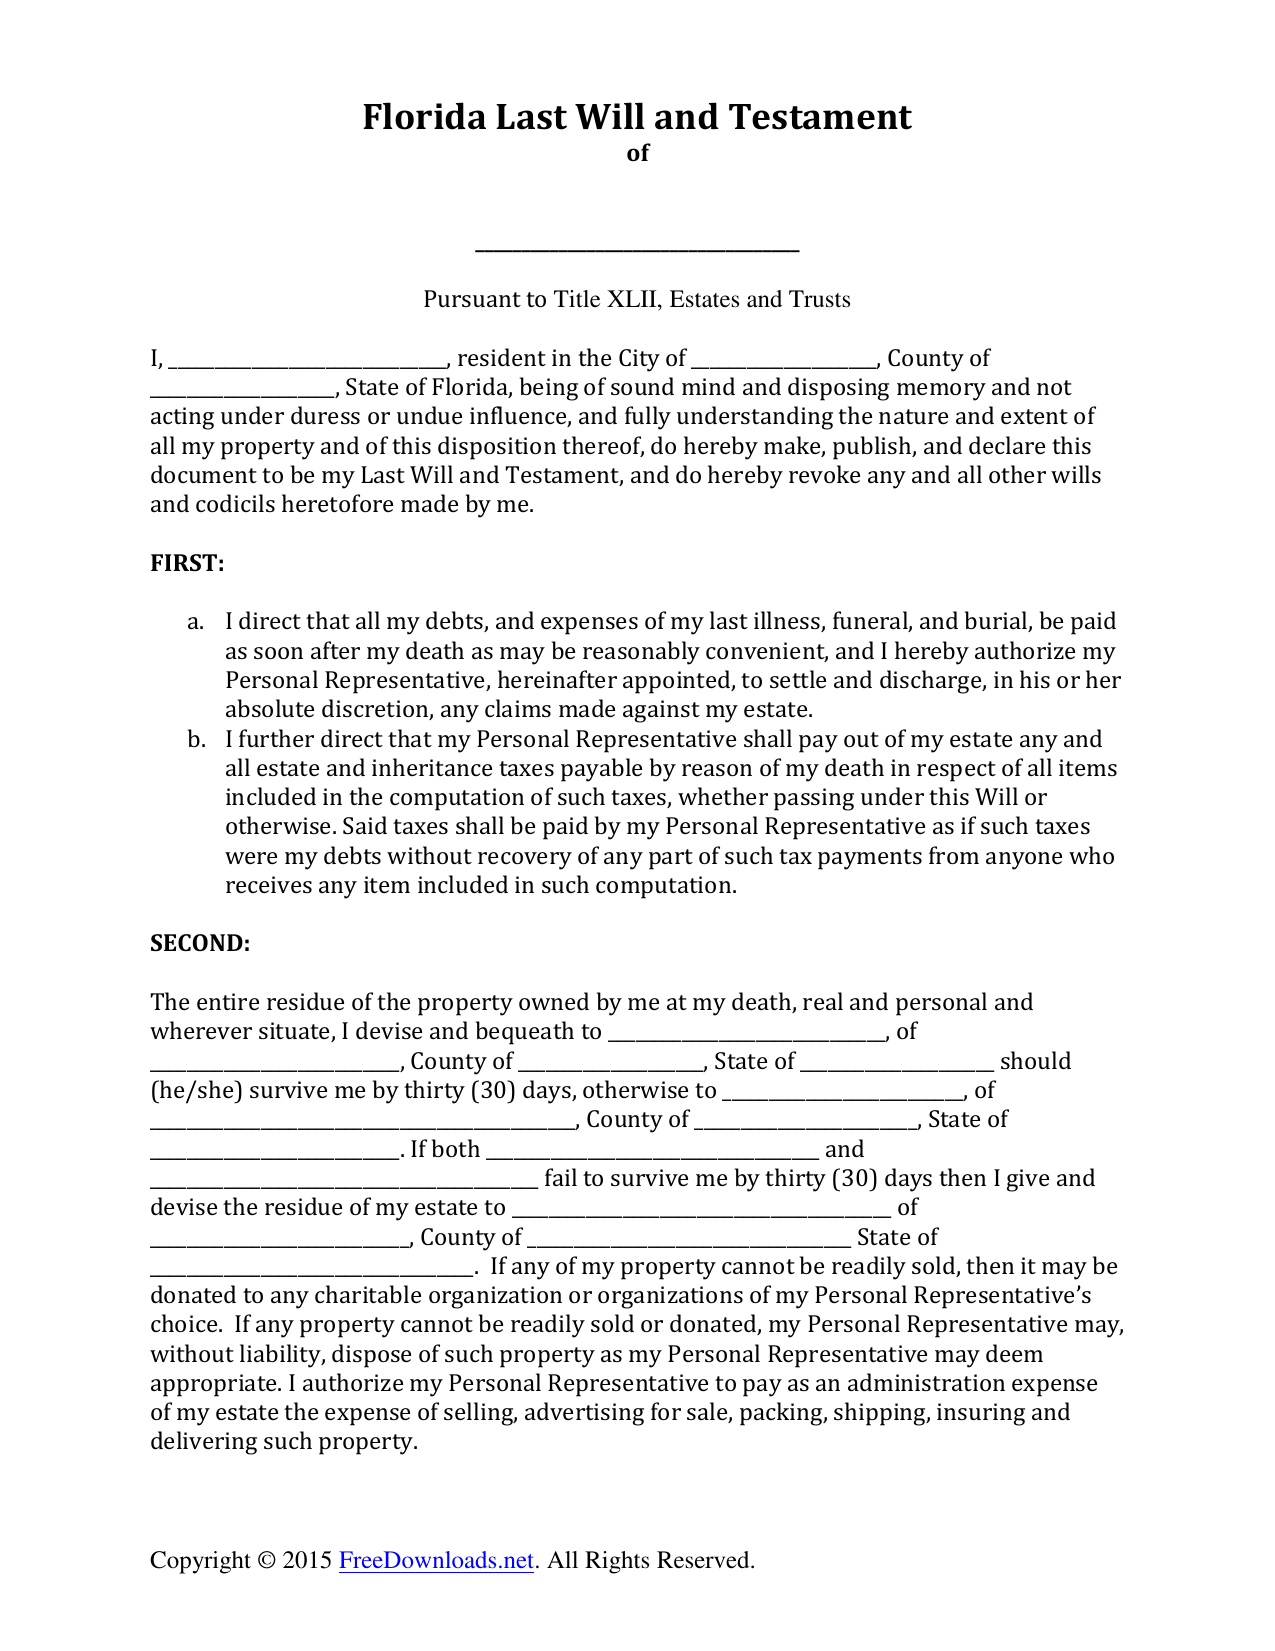 picture regarding Free Printable Florida Last Will and Testament Form named Down load Florida Very last Will and Testomony Type PDF RTF